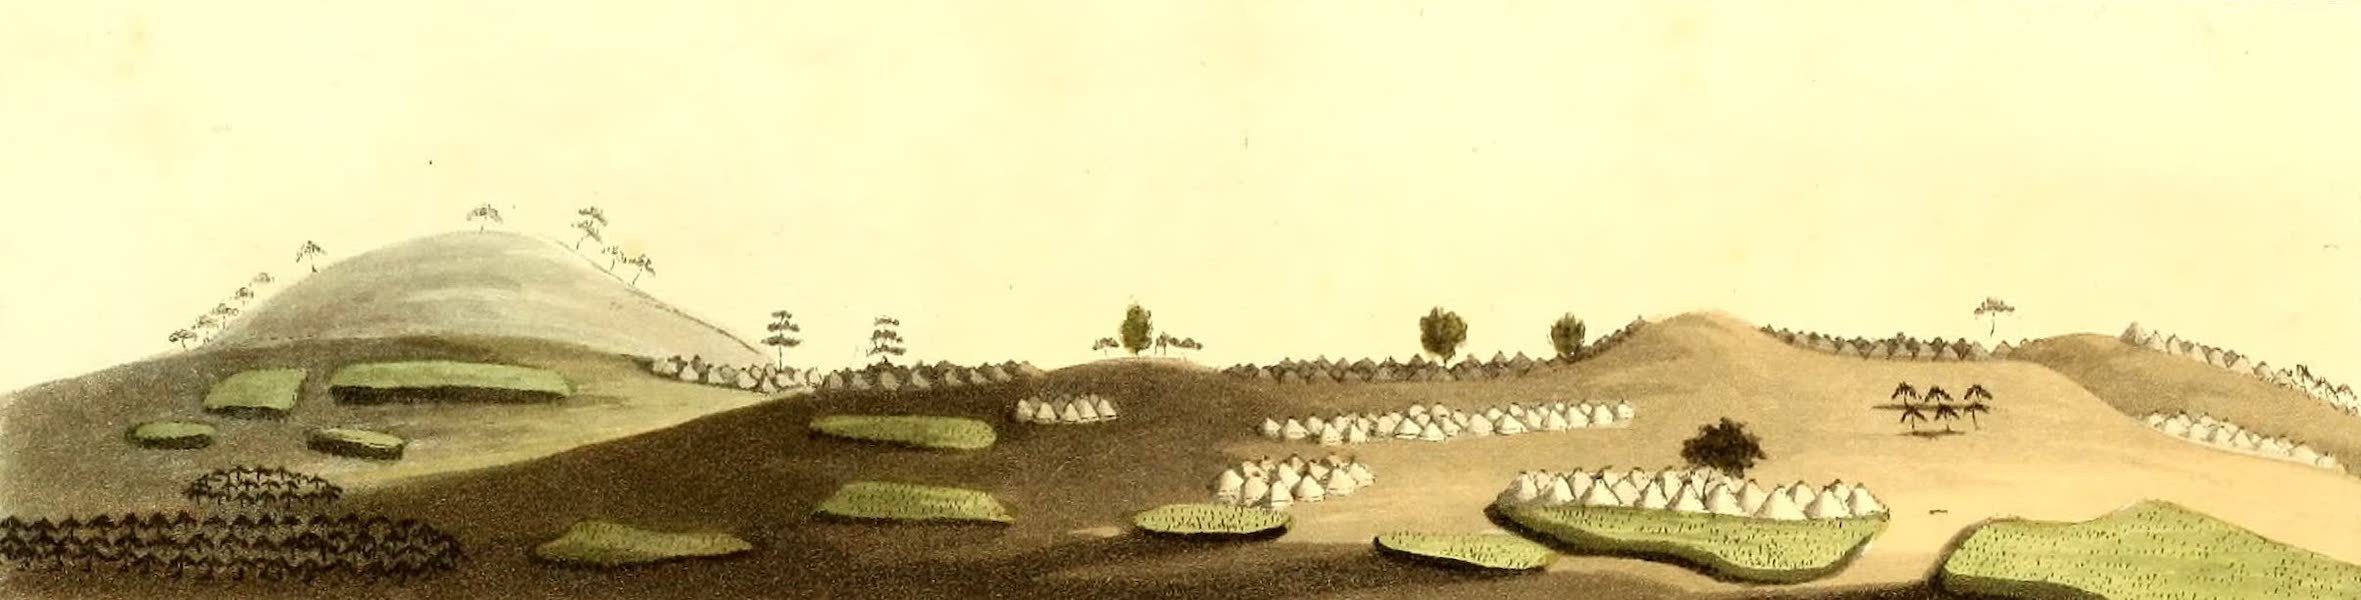 Travels in South Africa Vol. 2 - City of Mashow, from the West, with adjacent Villages &c (1822)